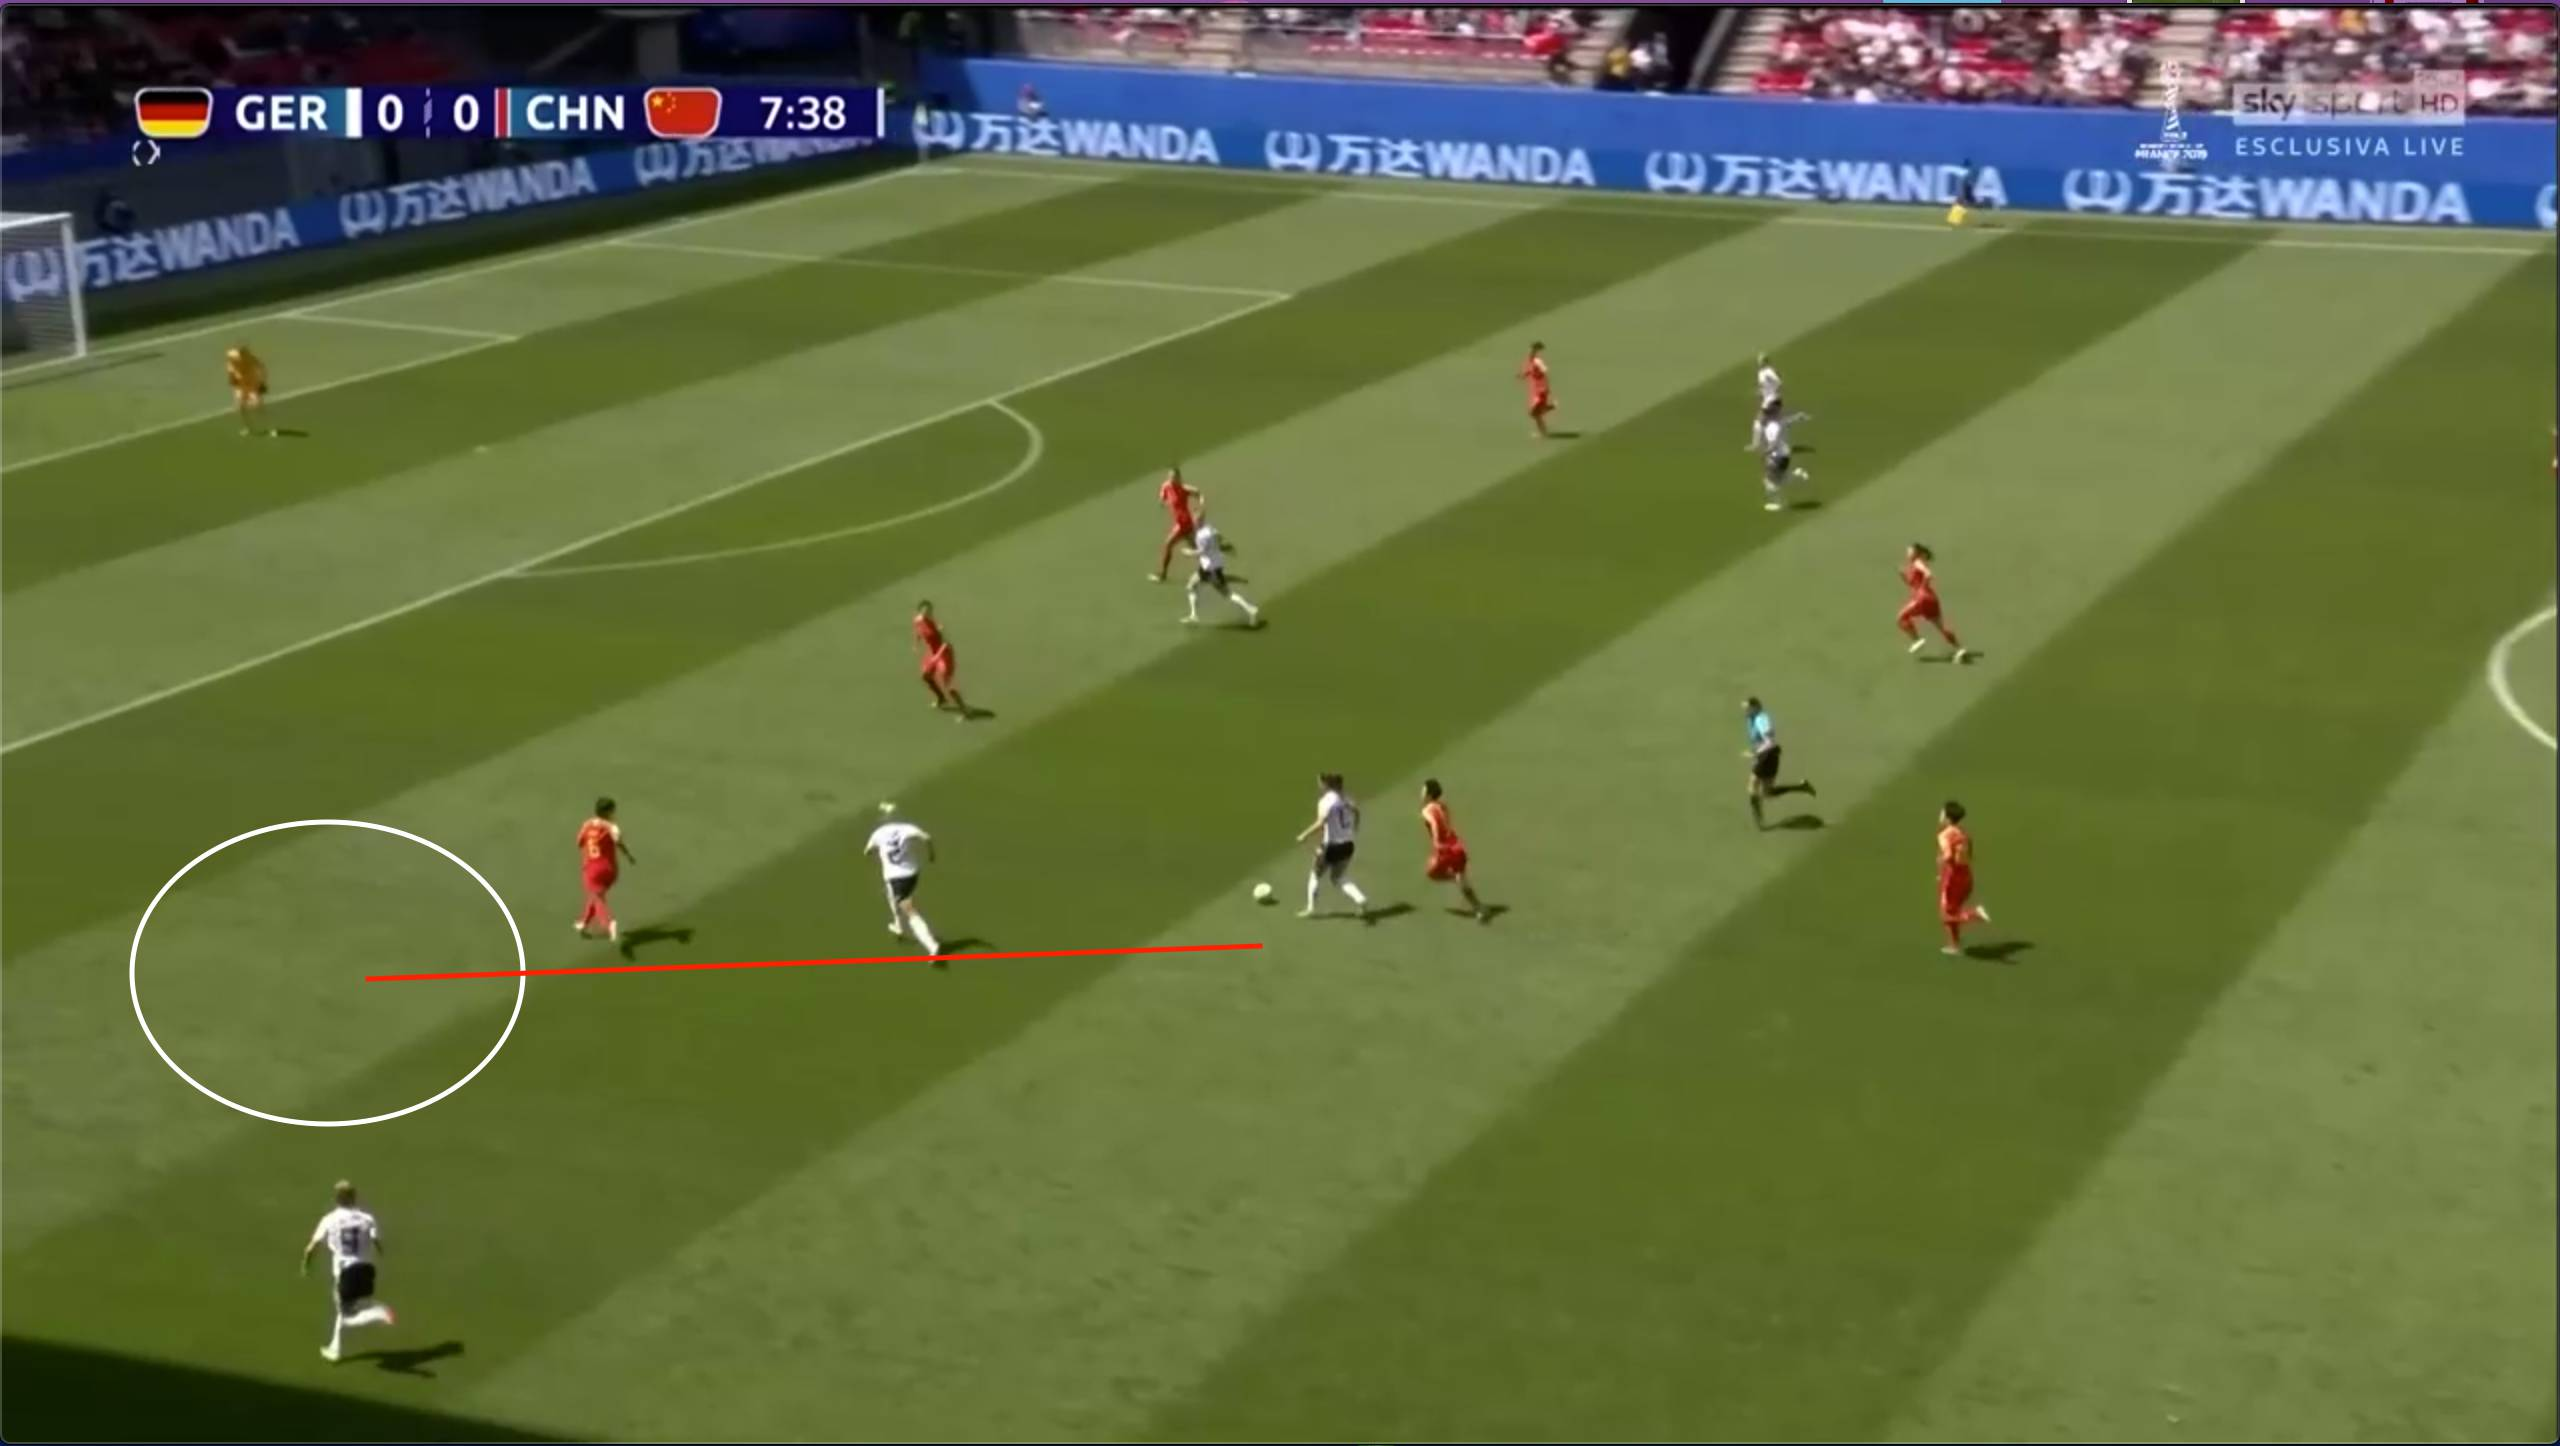 tactical-analysis-south-africa-germany-fifa-womens-world-cup-analysis